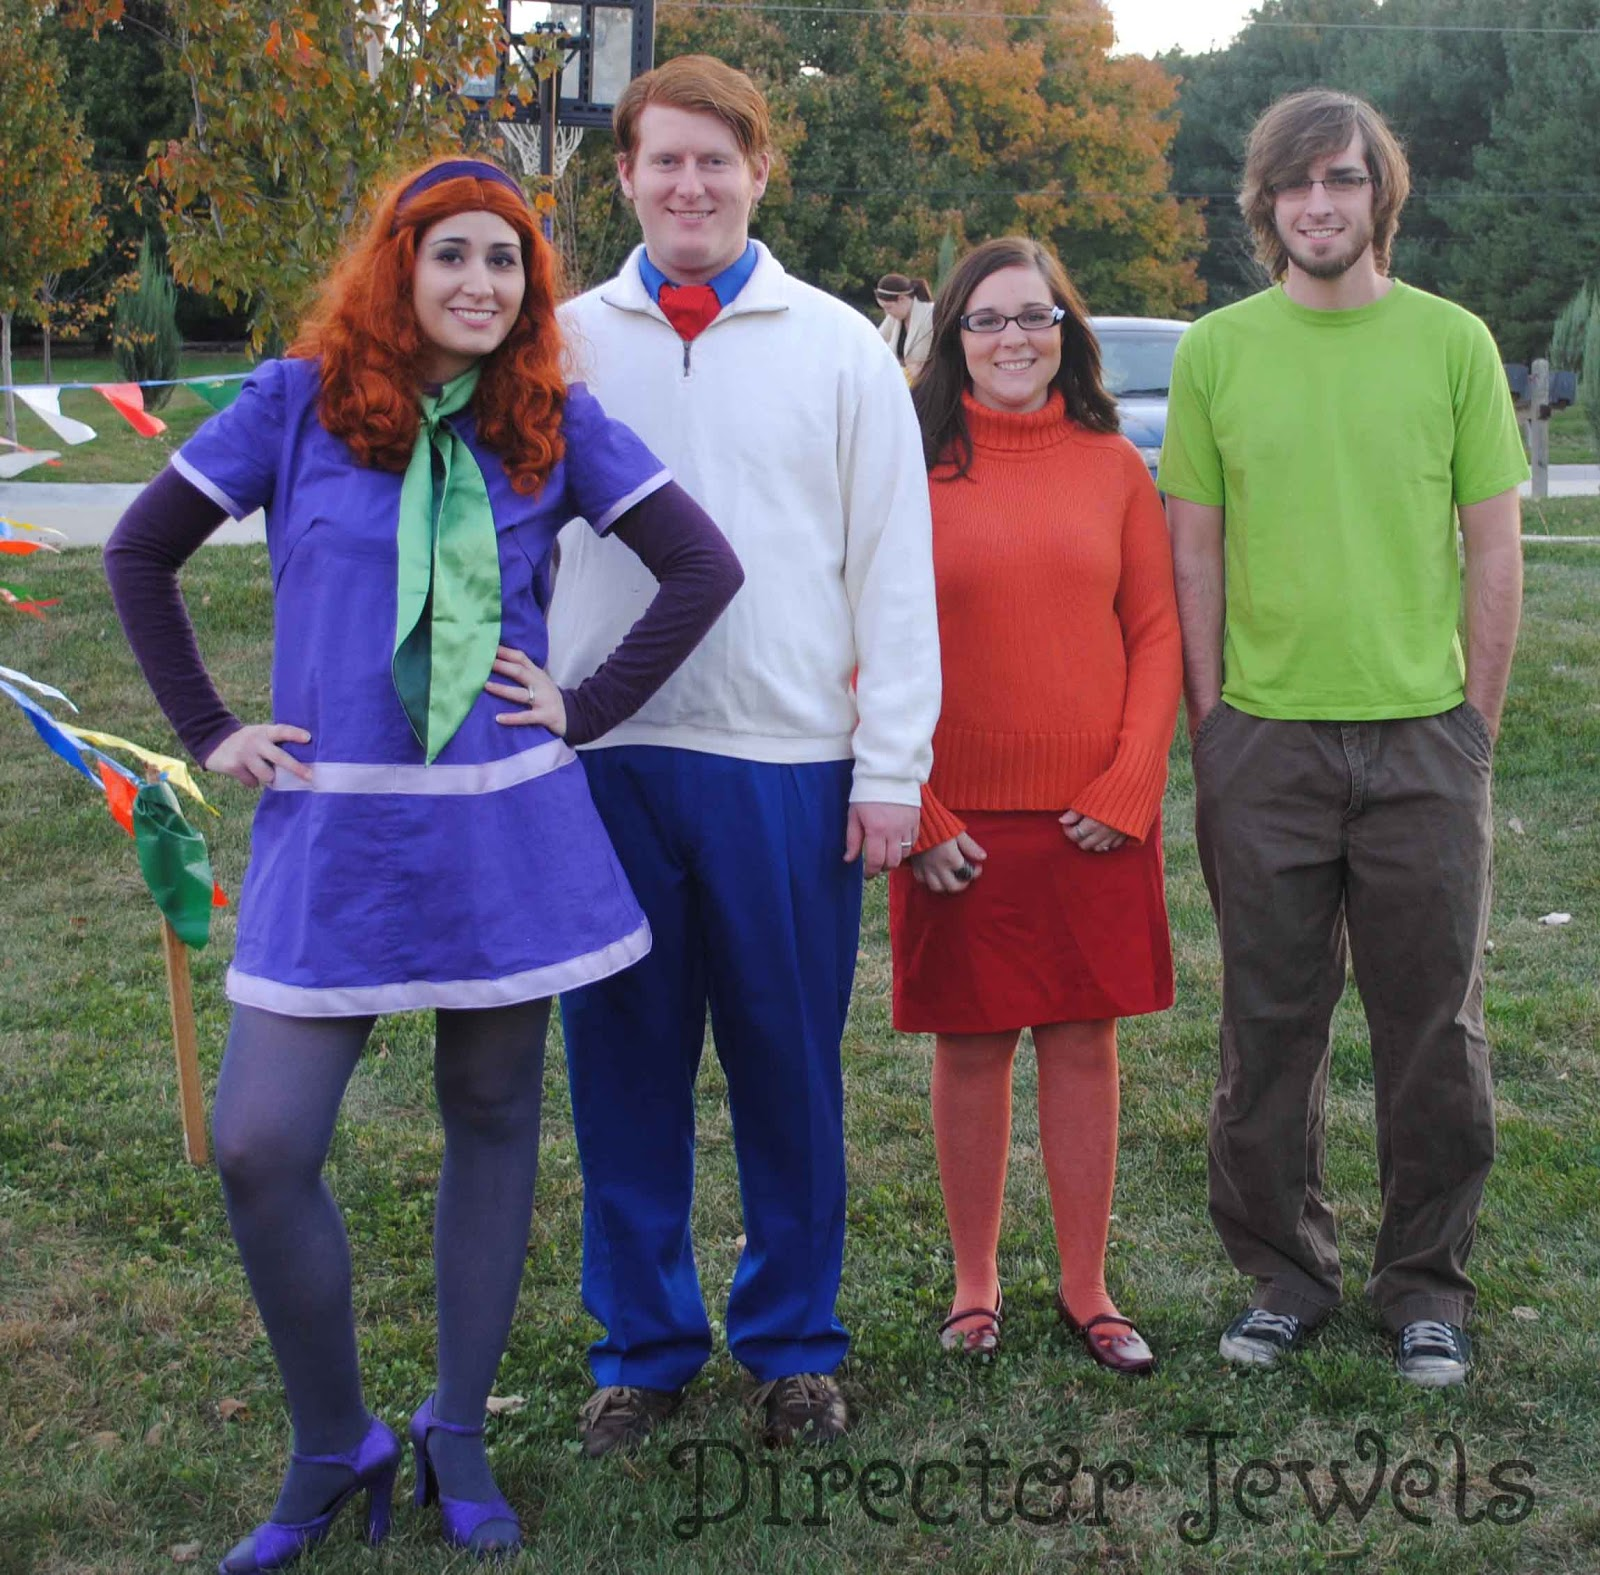 director jewels: like wow, scoob, it's the whole gang! halloween